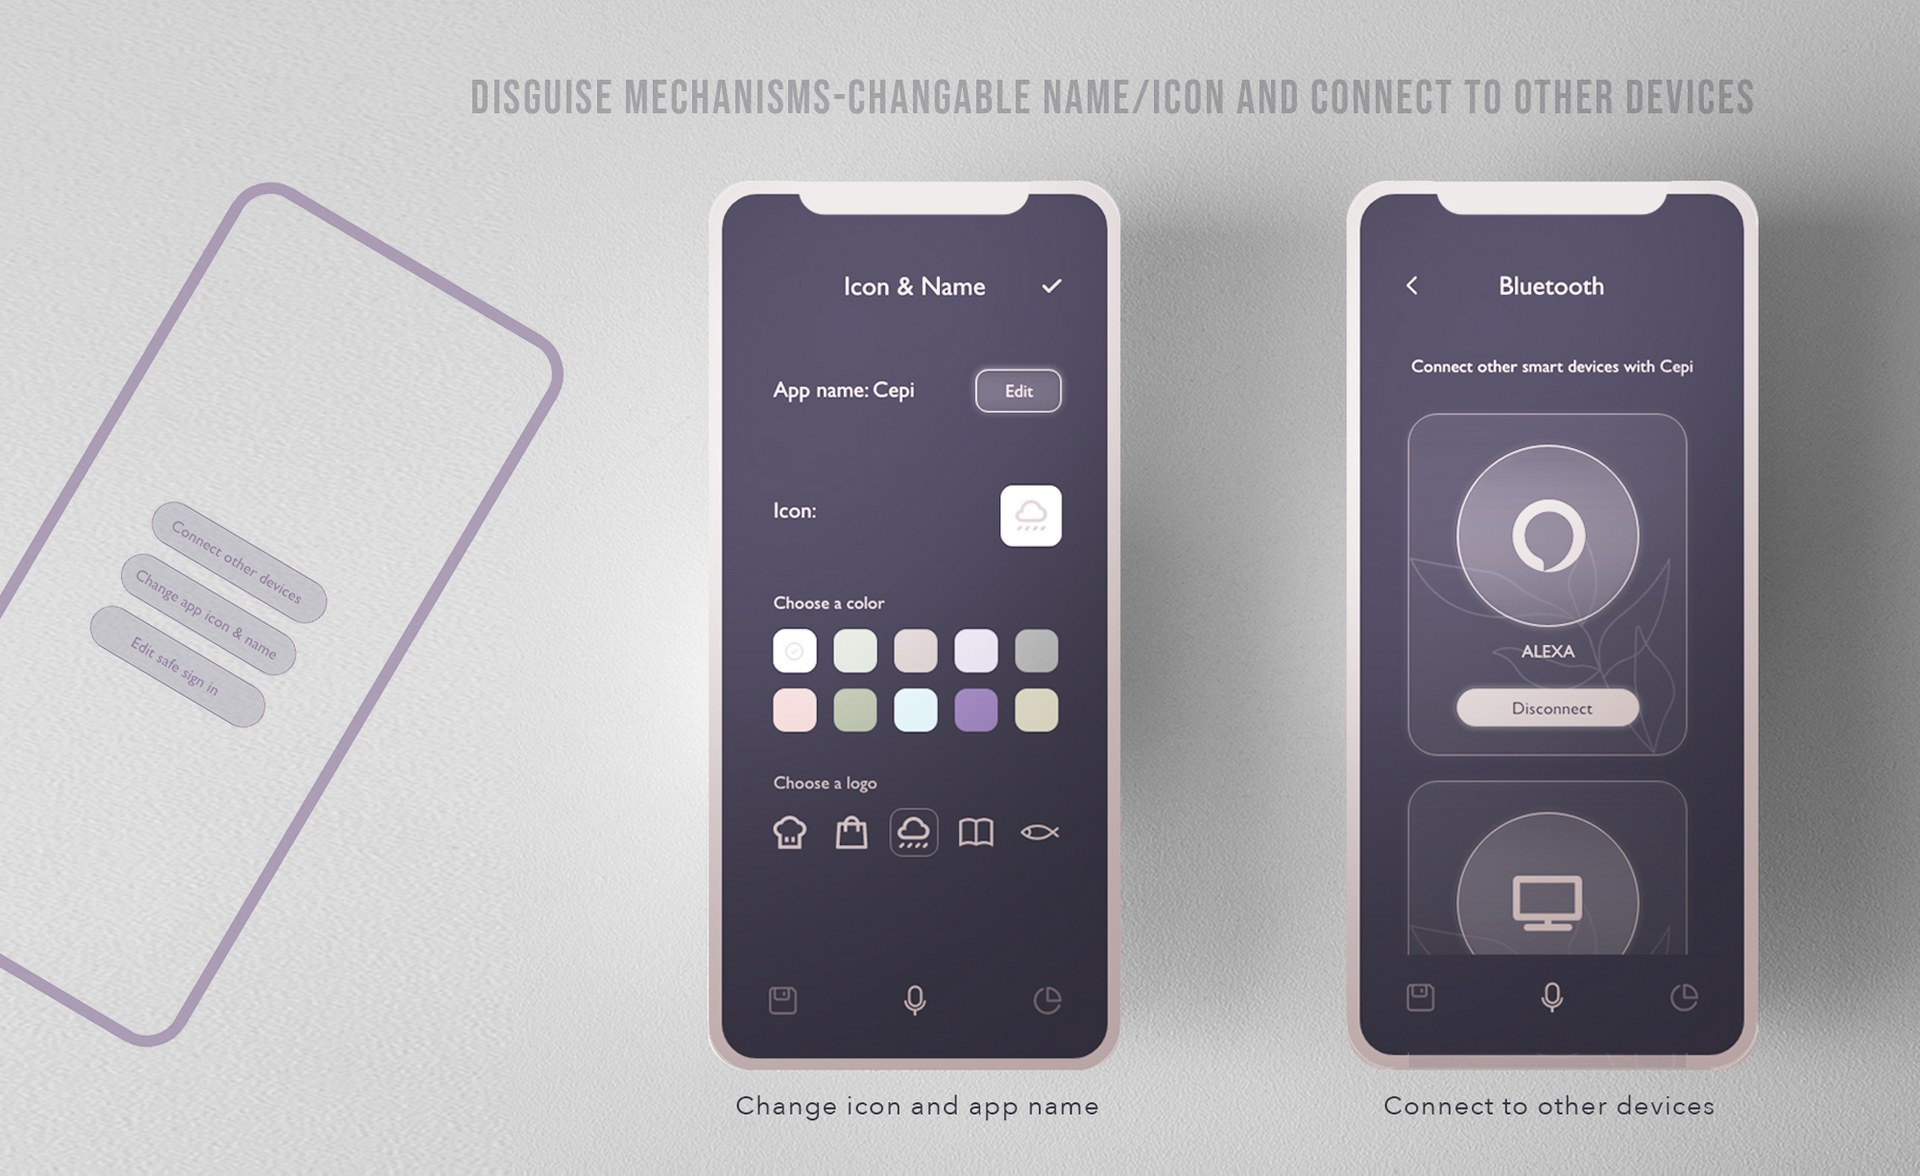 Disguise mechanism: changeable app icon and name & connect to other devices